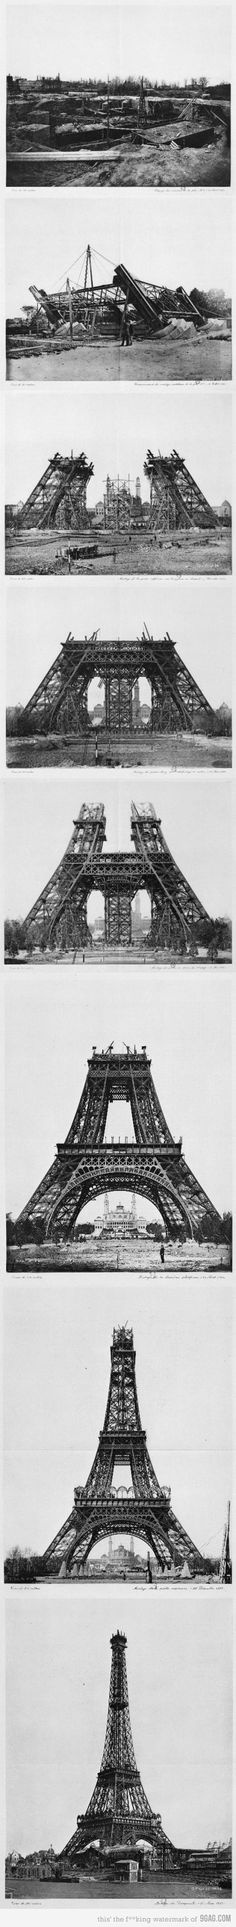 Construction of the Eiffel Tower | Rare Pictures. | Most Beautiful Pages